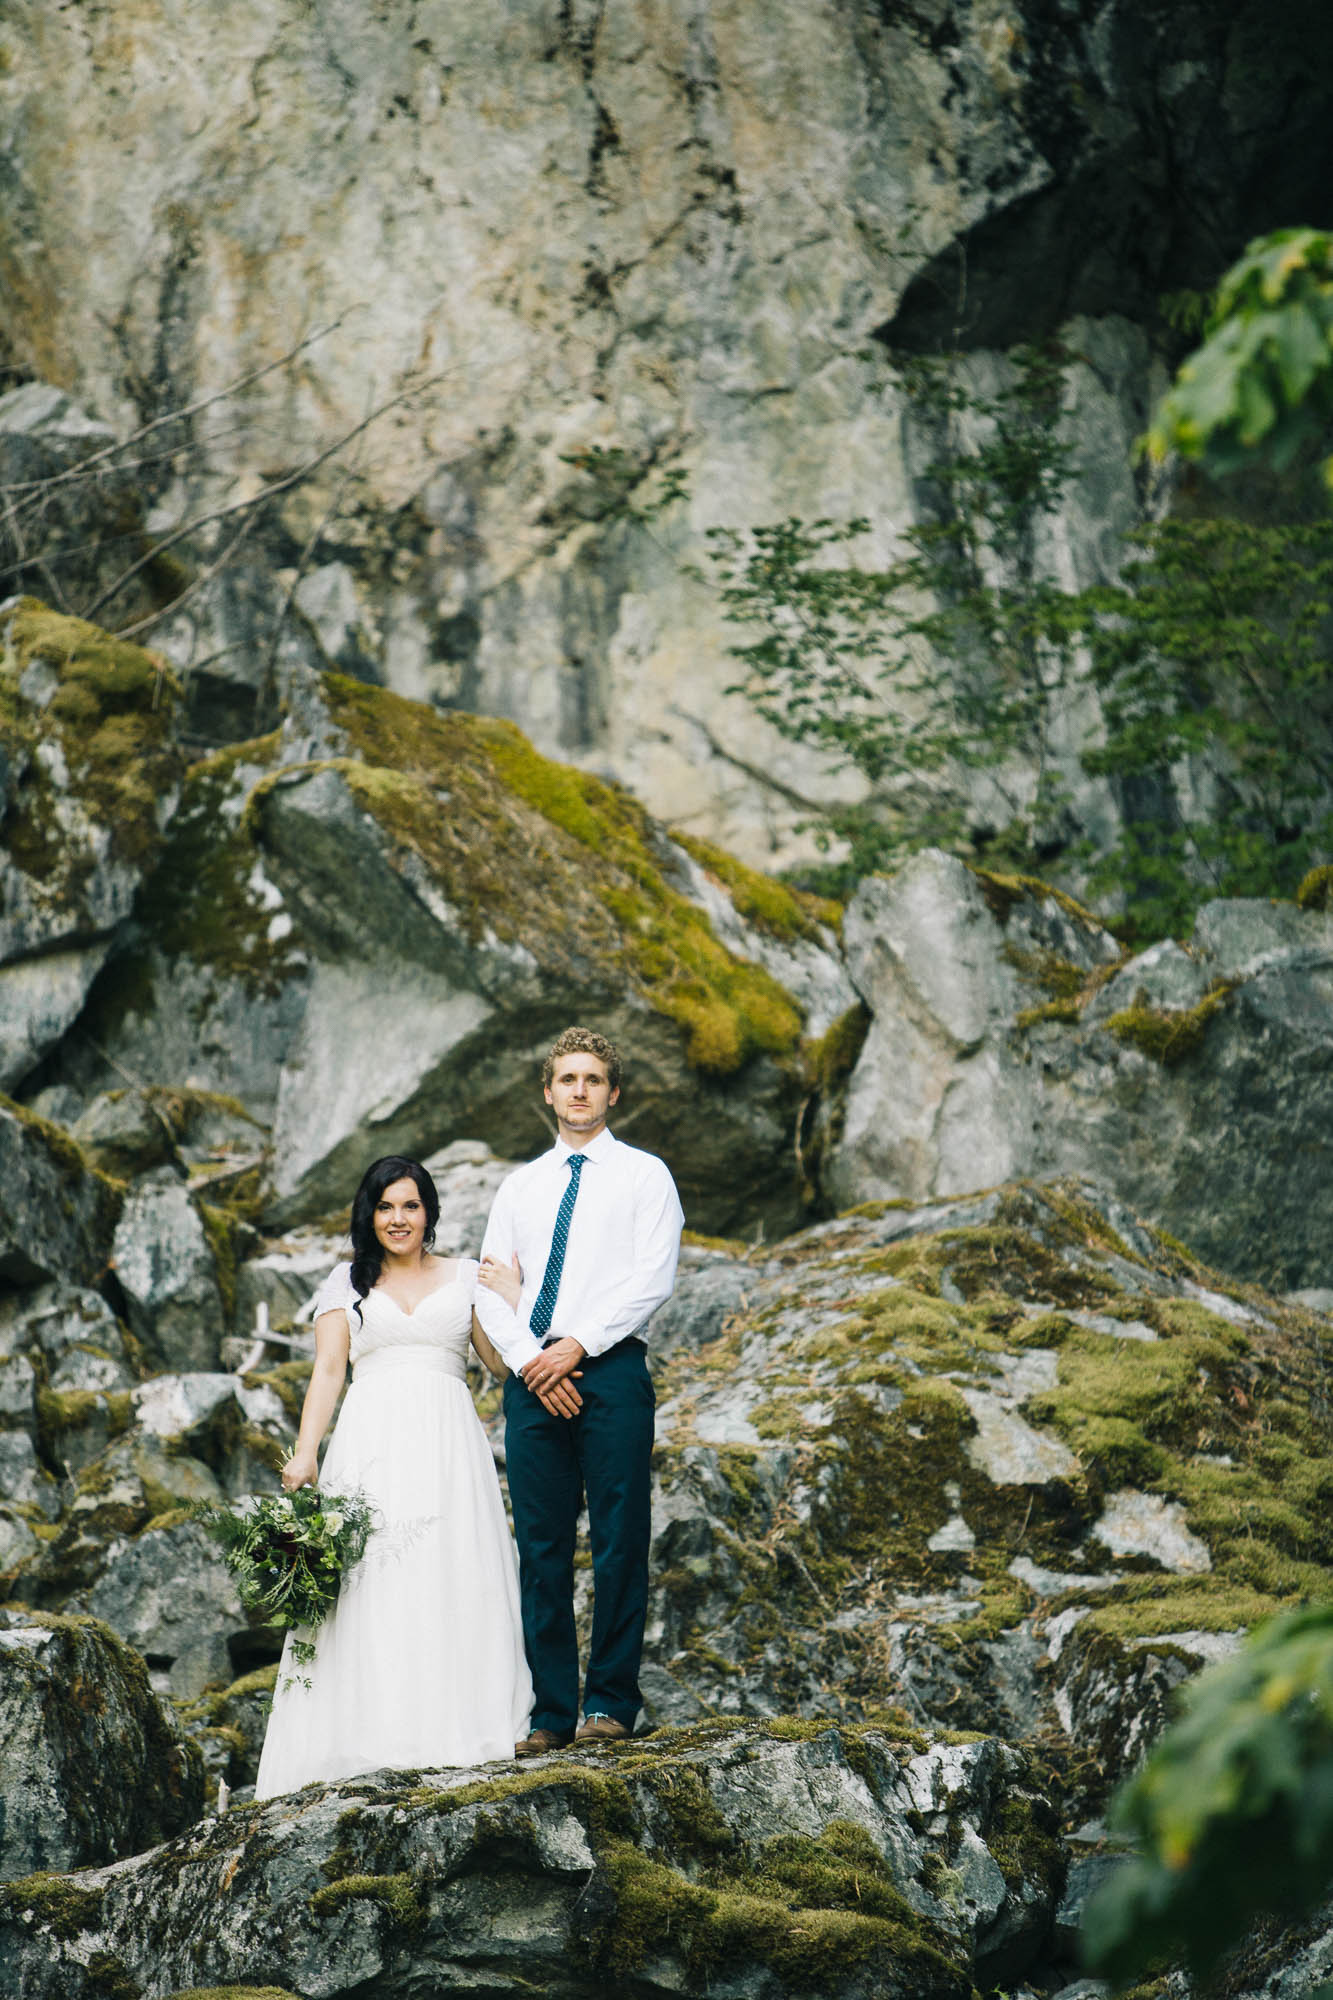 20140920_wedding_best_vancouver_rustic_photographer_photography_squamish__235.jpg